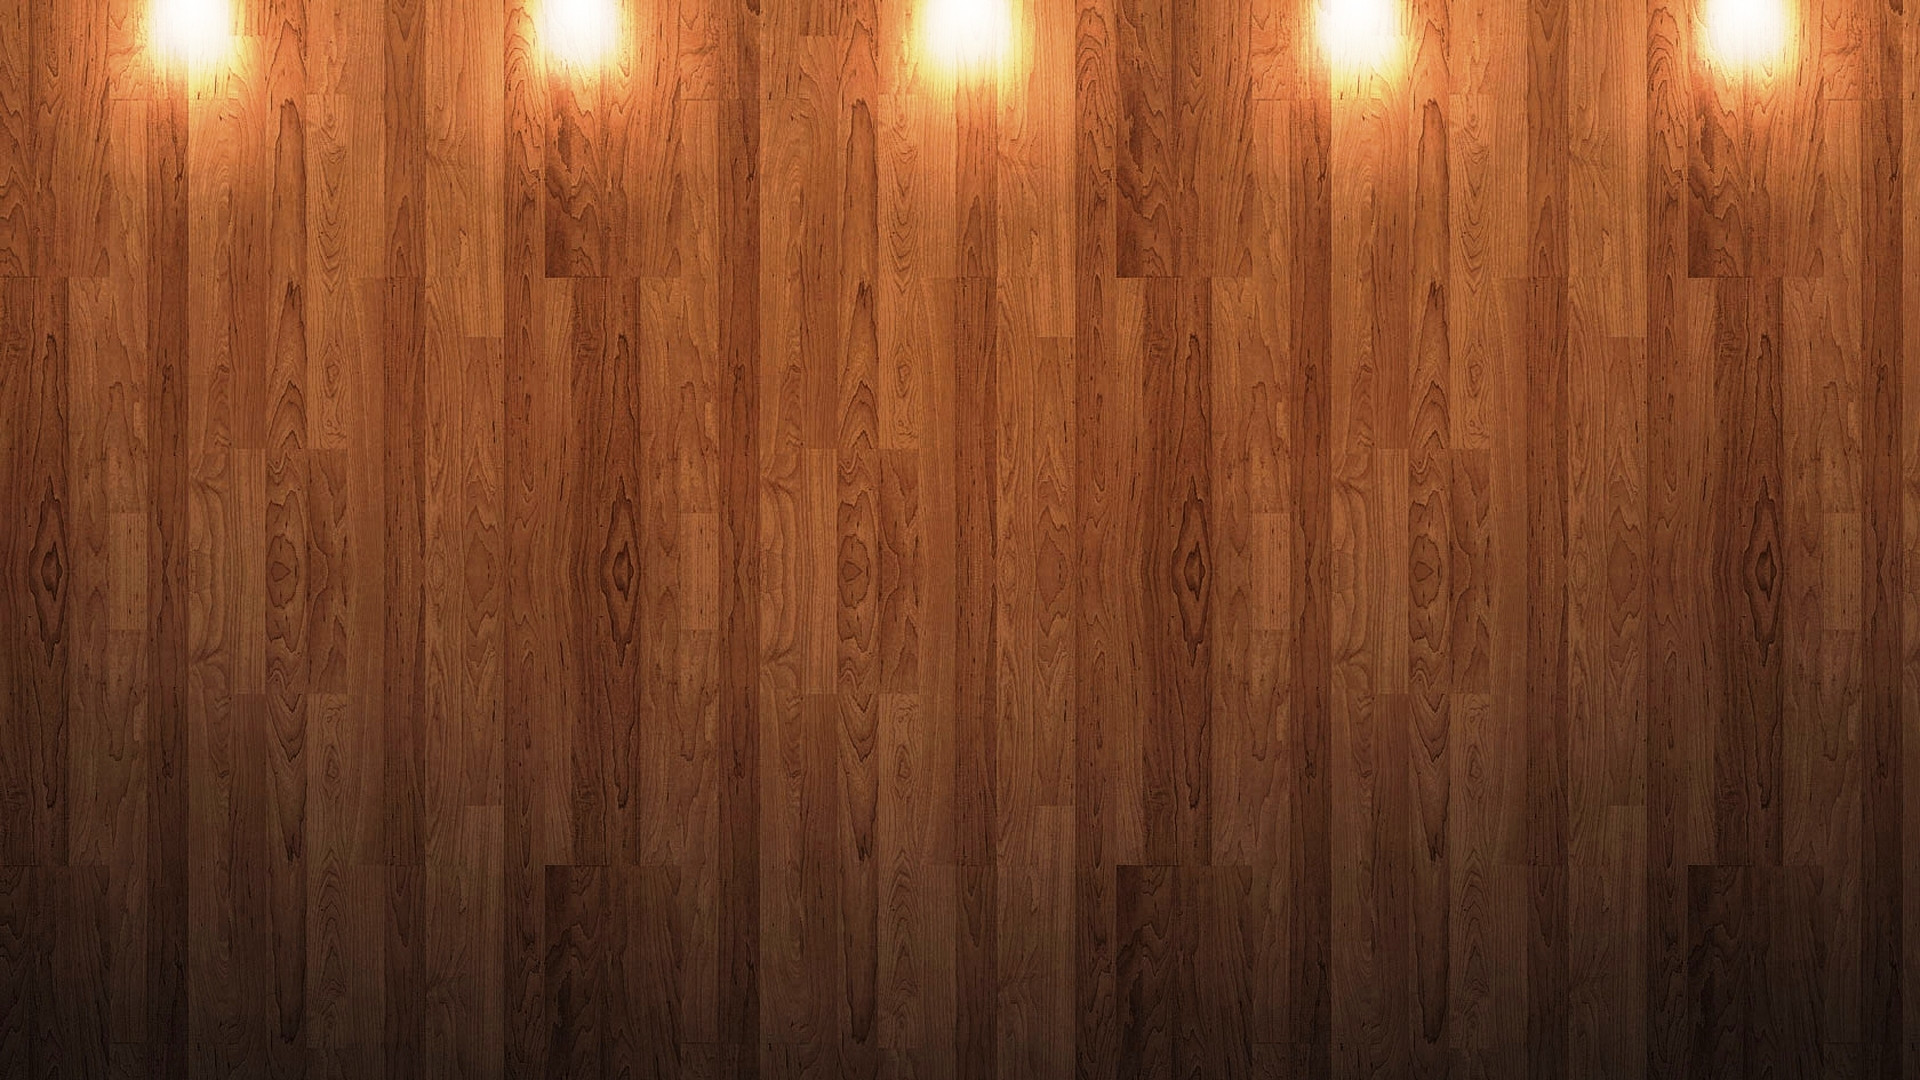 35 HD Wood Wallpapers Backgrounds For Free Download Wood Wallpaper Background 27